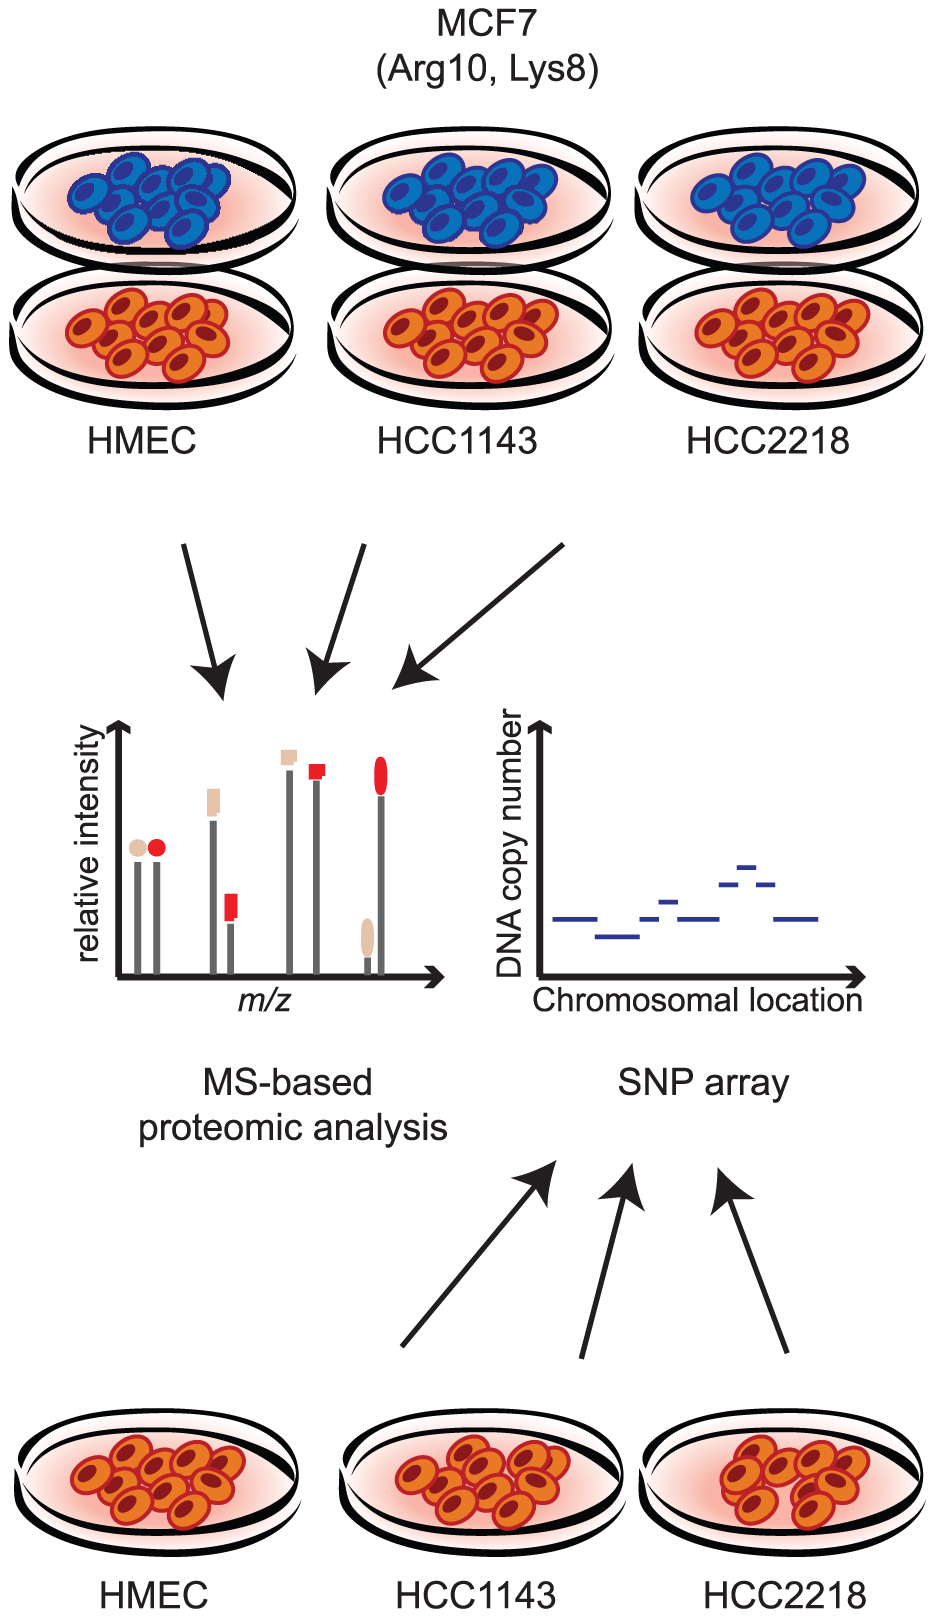 Measuring proteome and genome changes in cancer versus normal cells.